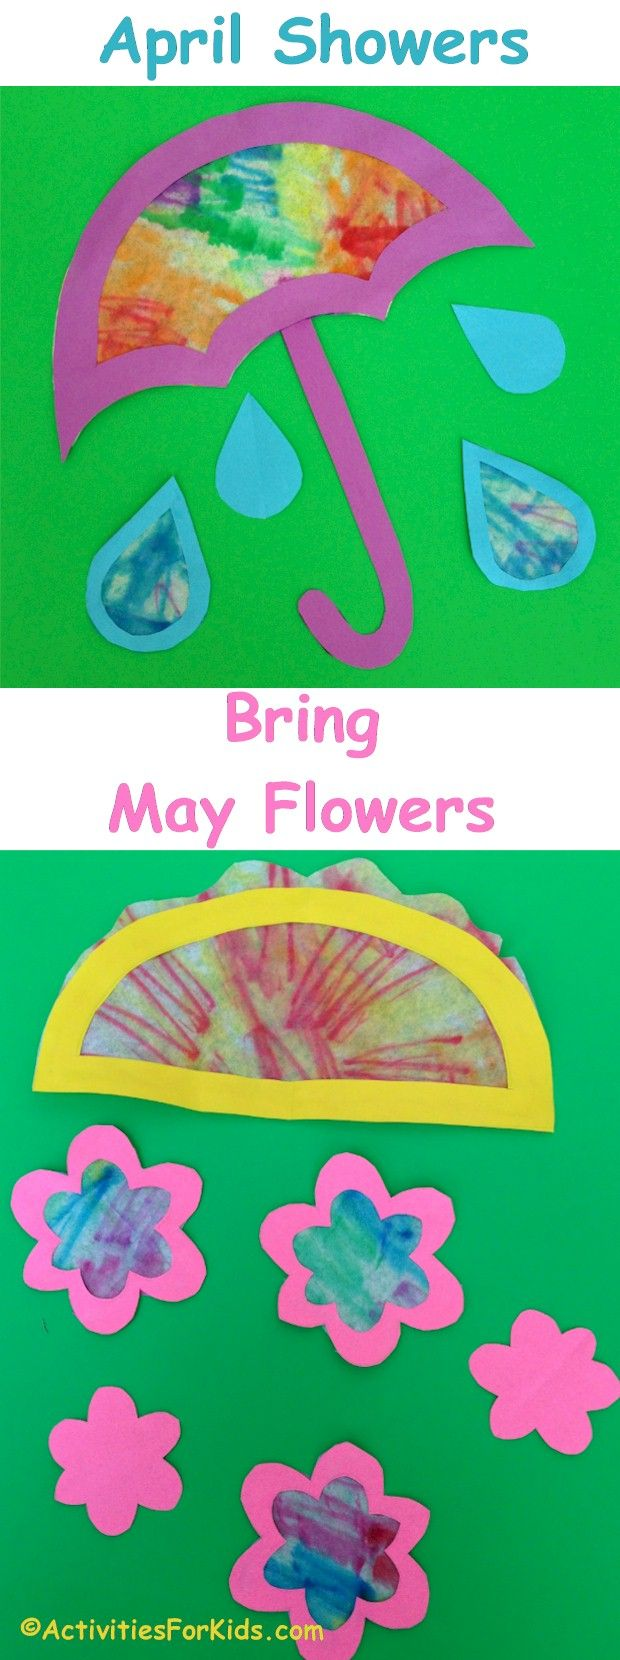 April Showers Bring May Flowers Craft For Kids Spring Crafts